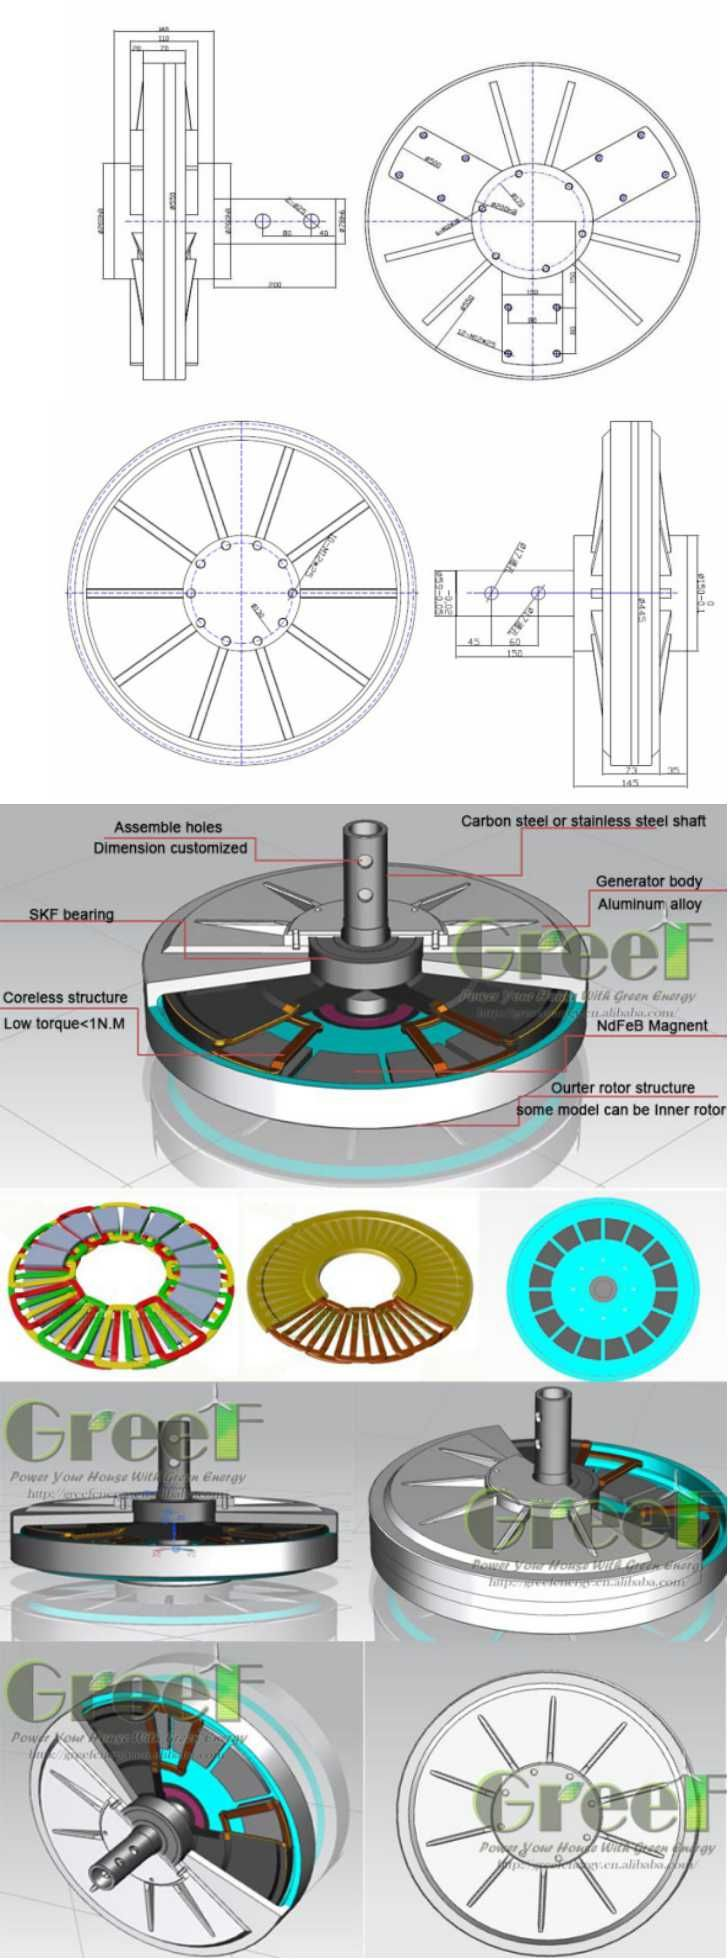 10kw 150rpm Vertical Axis Wind Generator with Low Start Torque - China Vertical Axis Wind Turbine Generator, Wind Power Generator | Made-in-China.com Mobile